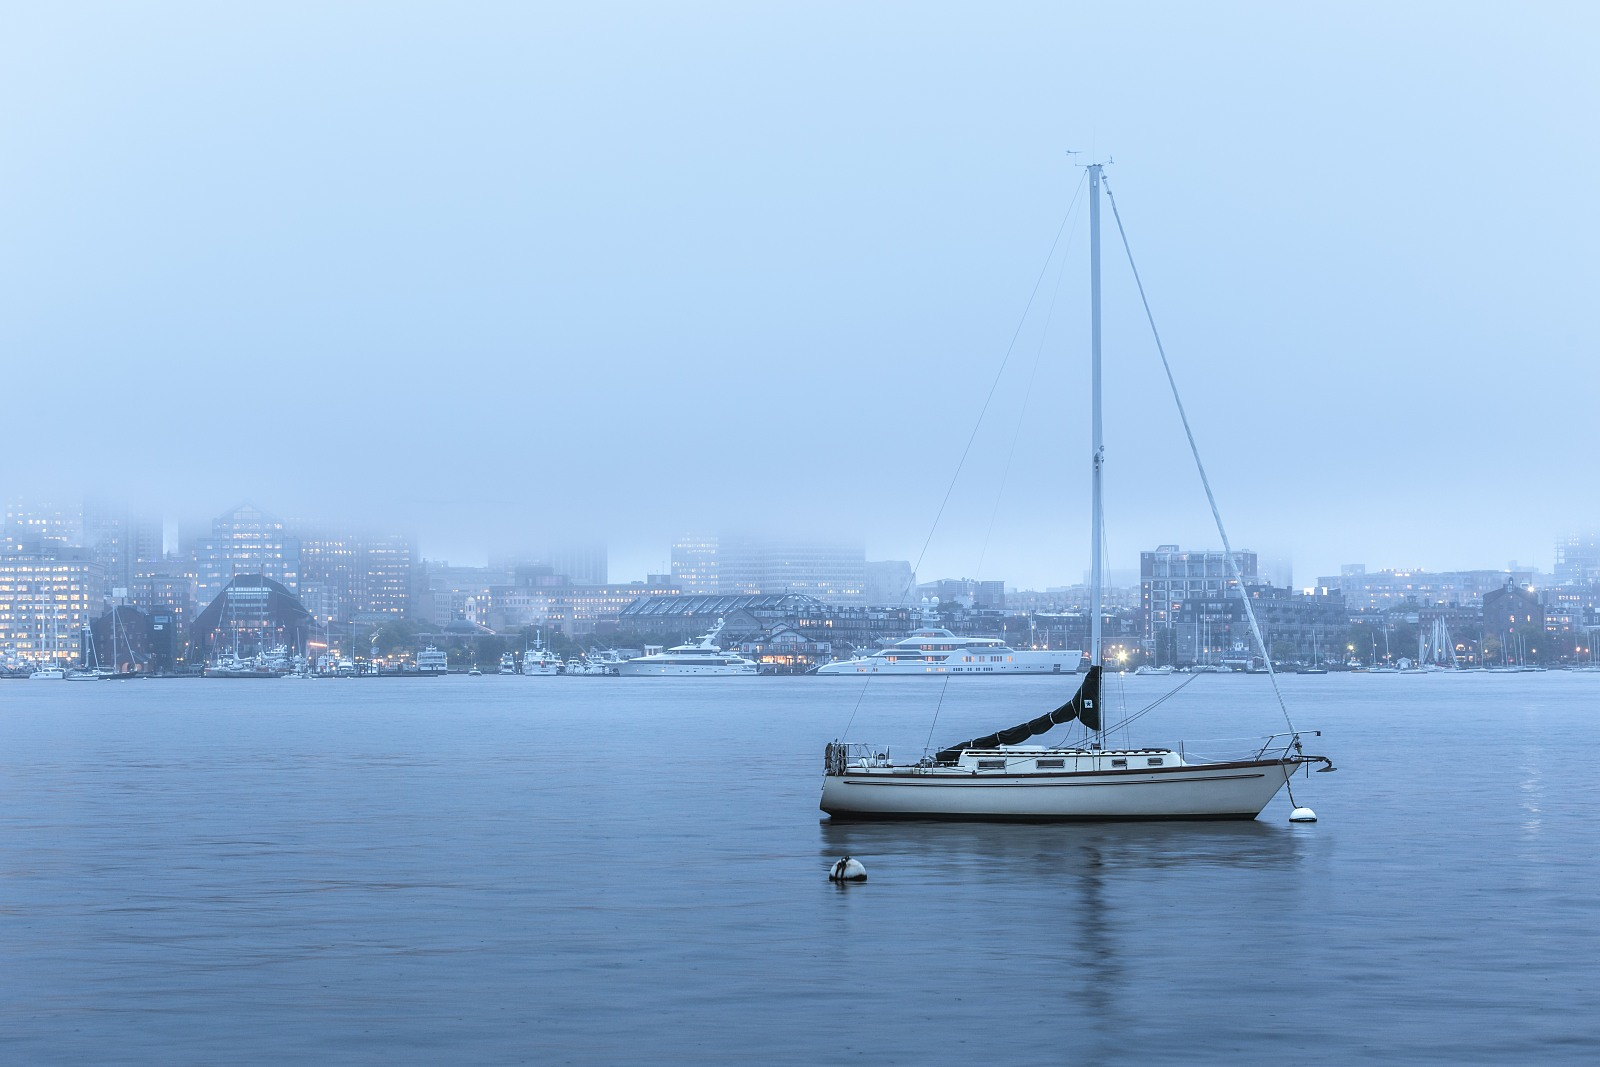 A boat and a foggy city